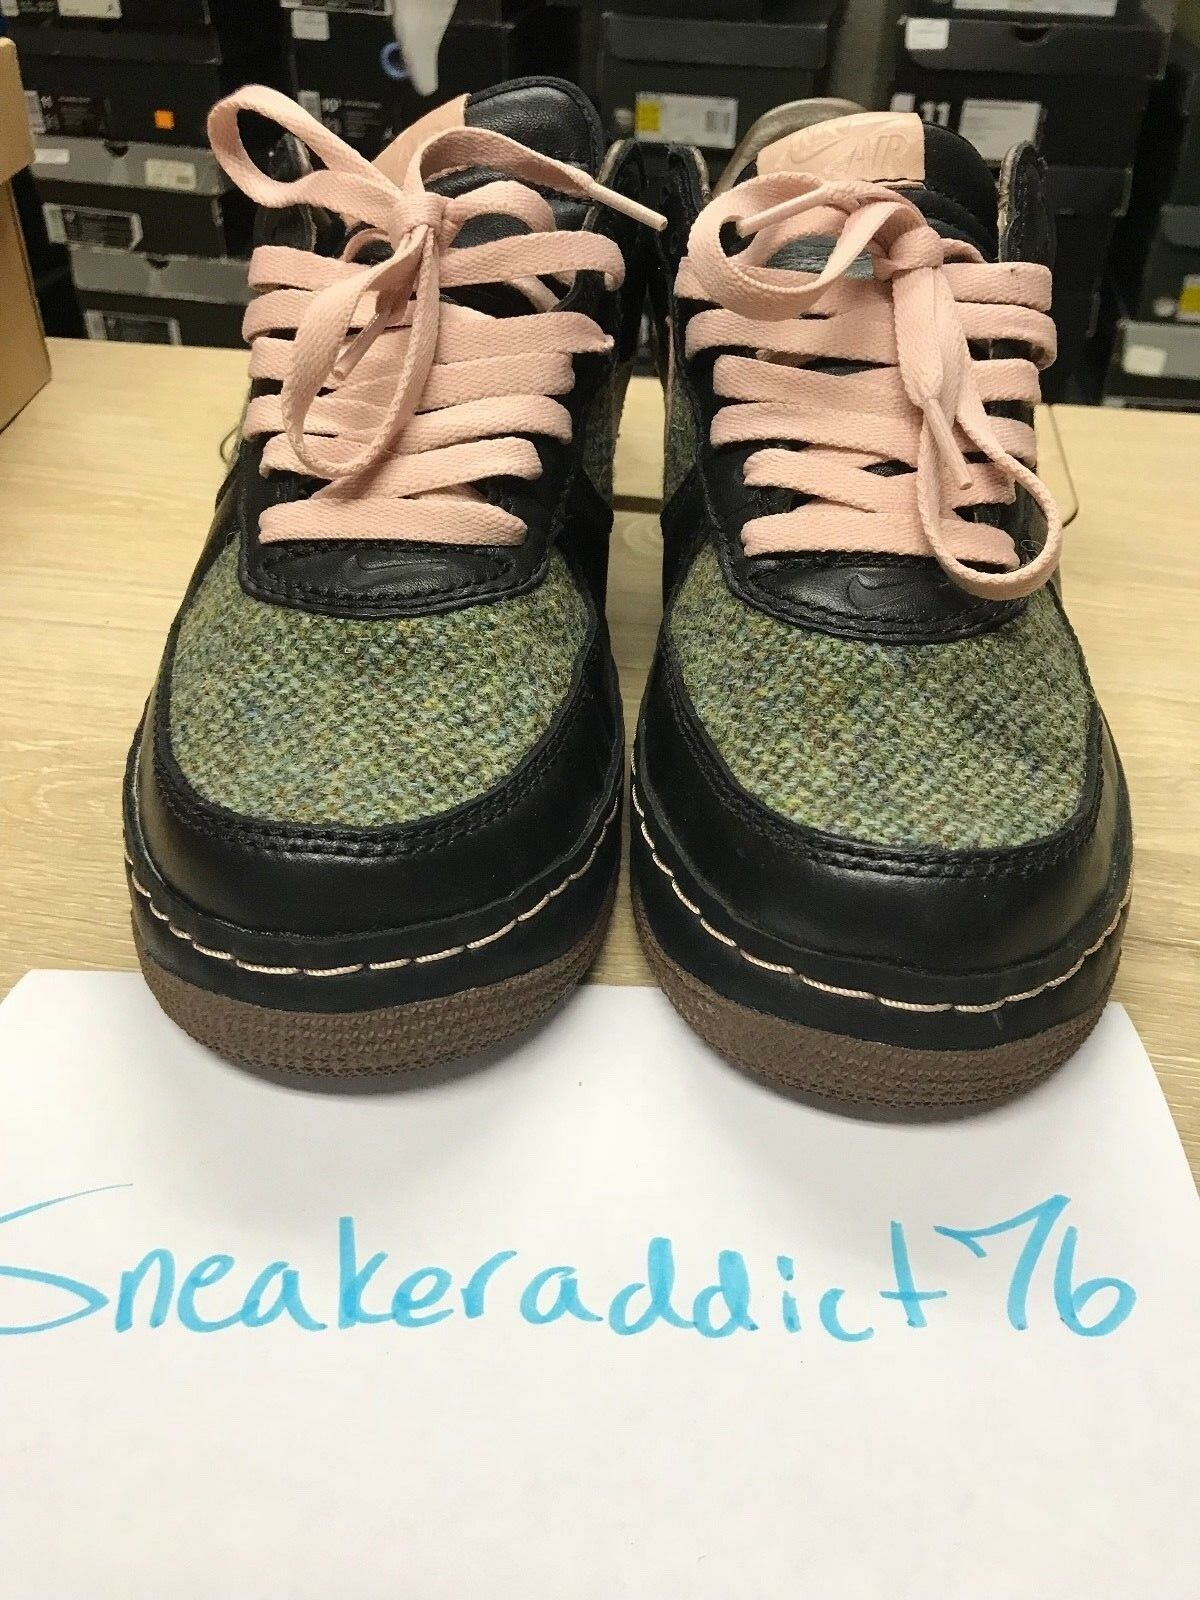 2005 Nike Air Force 1 Low InsideOut Tweed 312268‑061 Men's Size 10.5 IN BOX VNDS